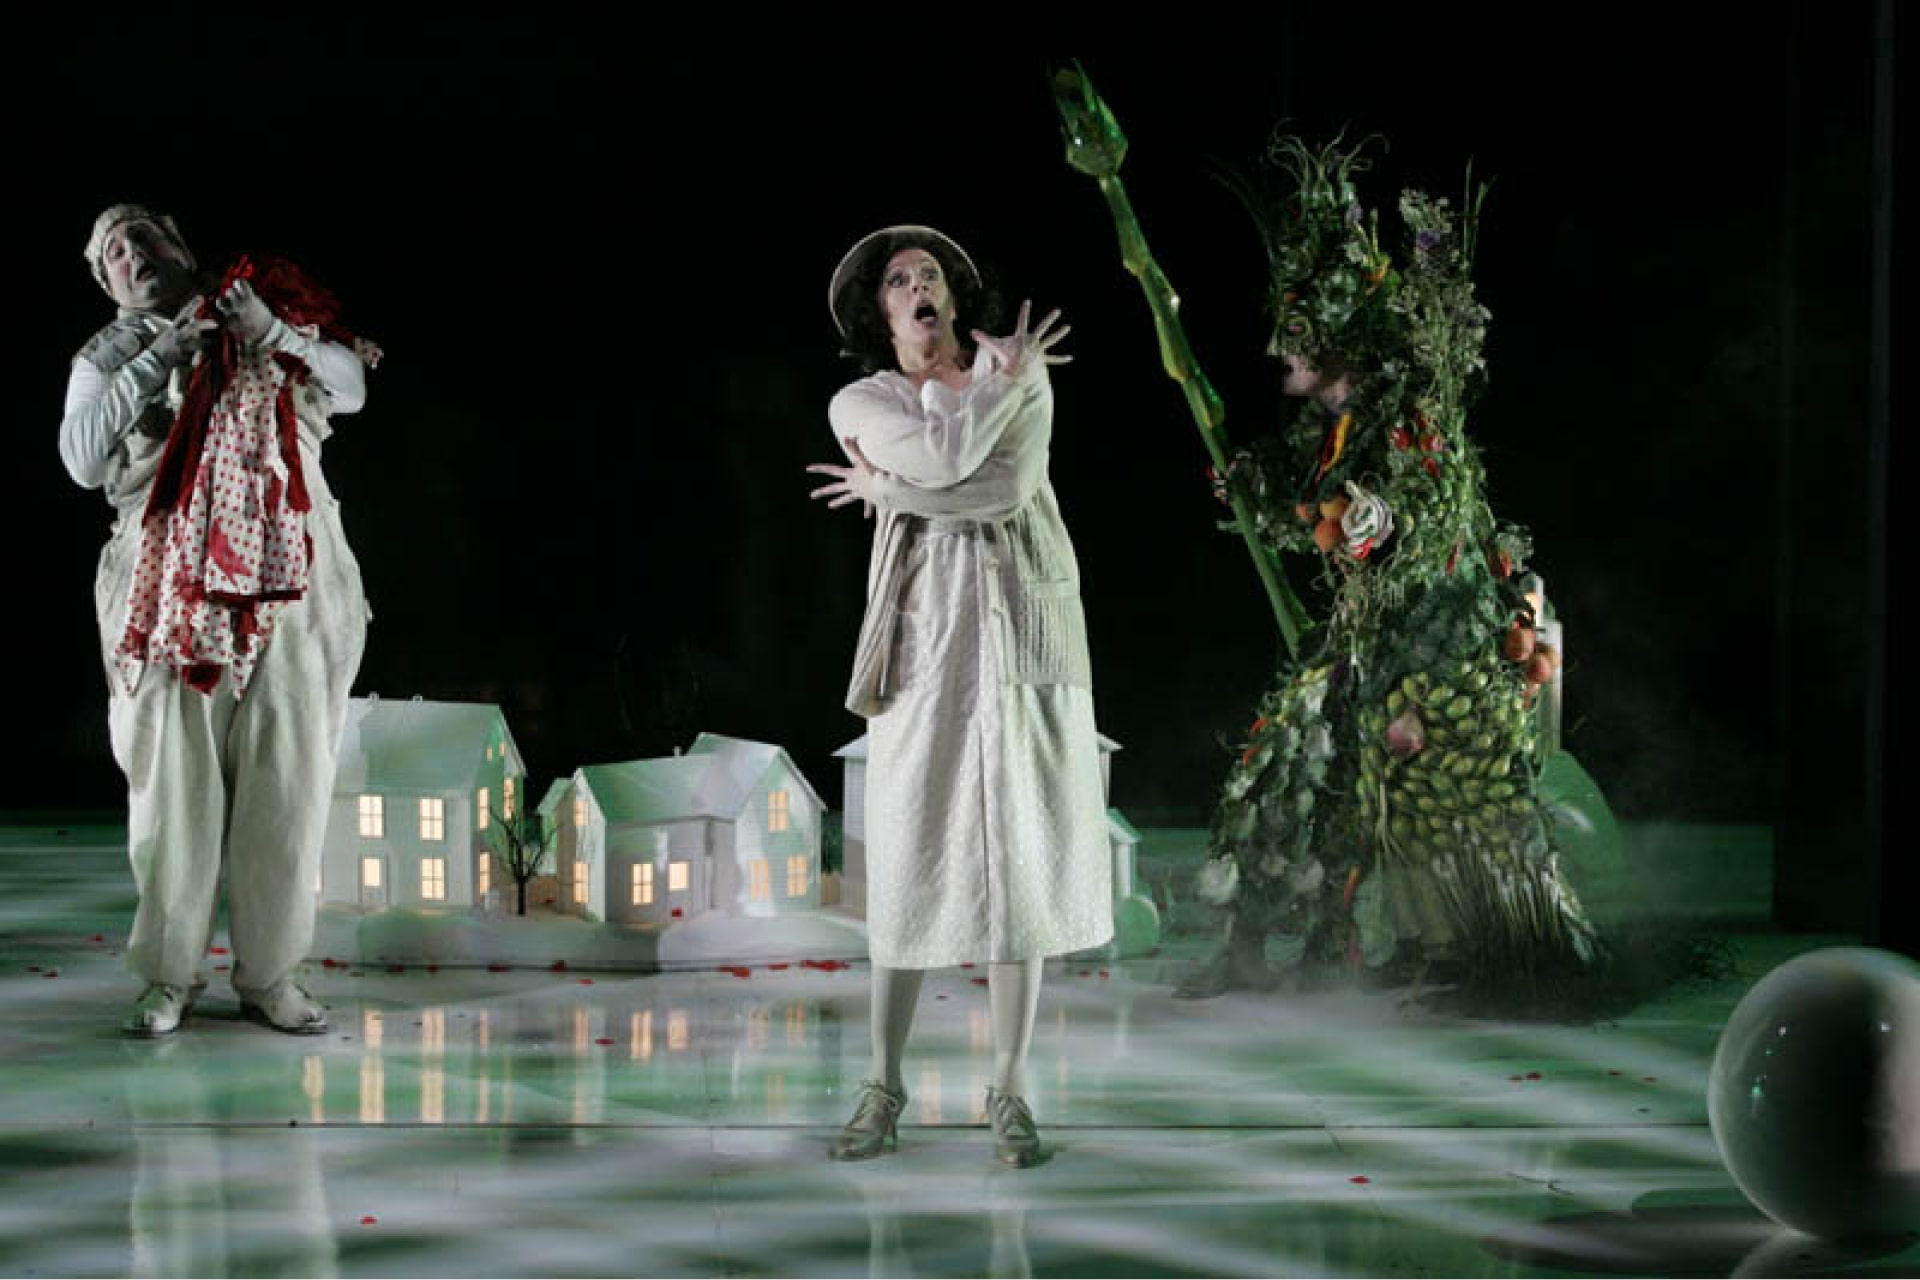 Woman in white dress and cardigan and man in checkered hat carrying red cloak stand frozen by green witch brandishing asparagus staff.